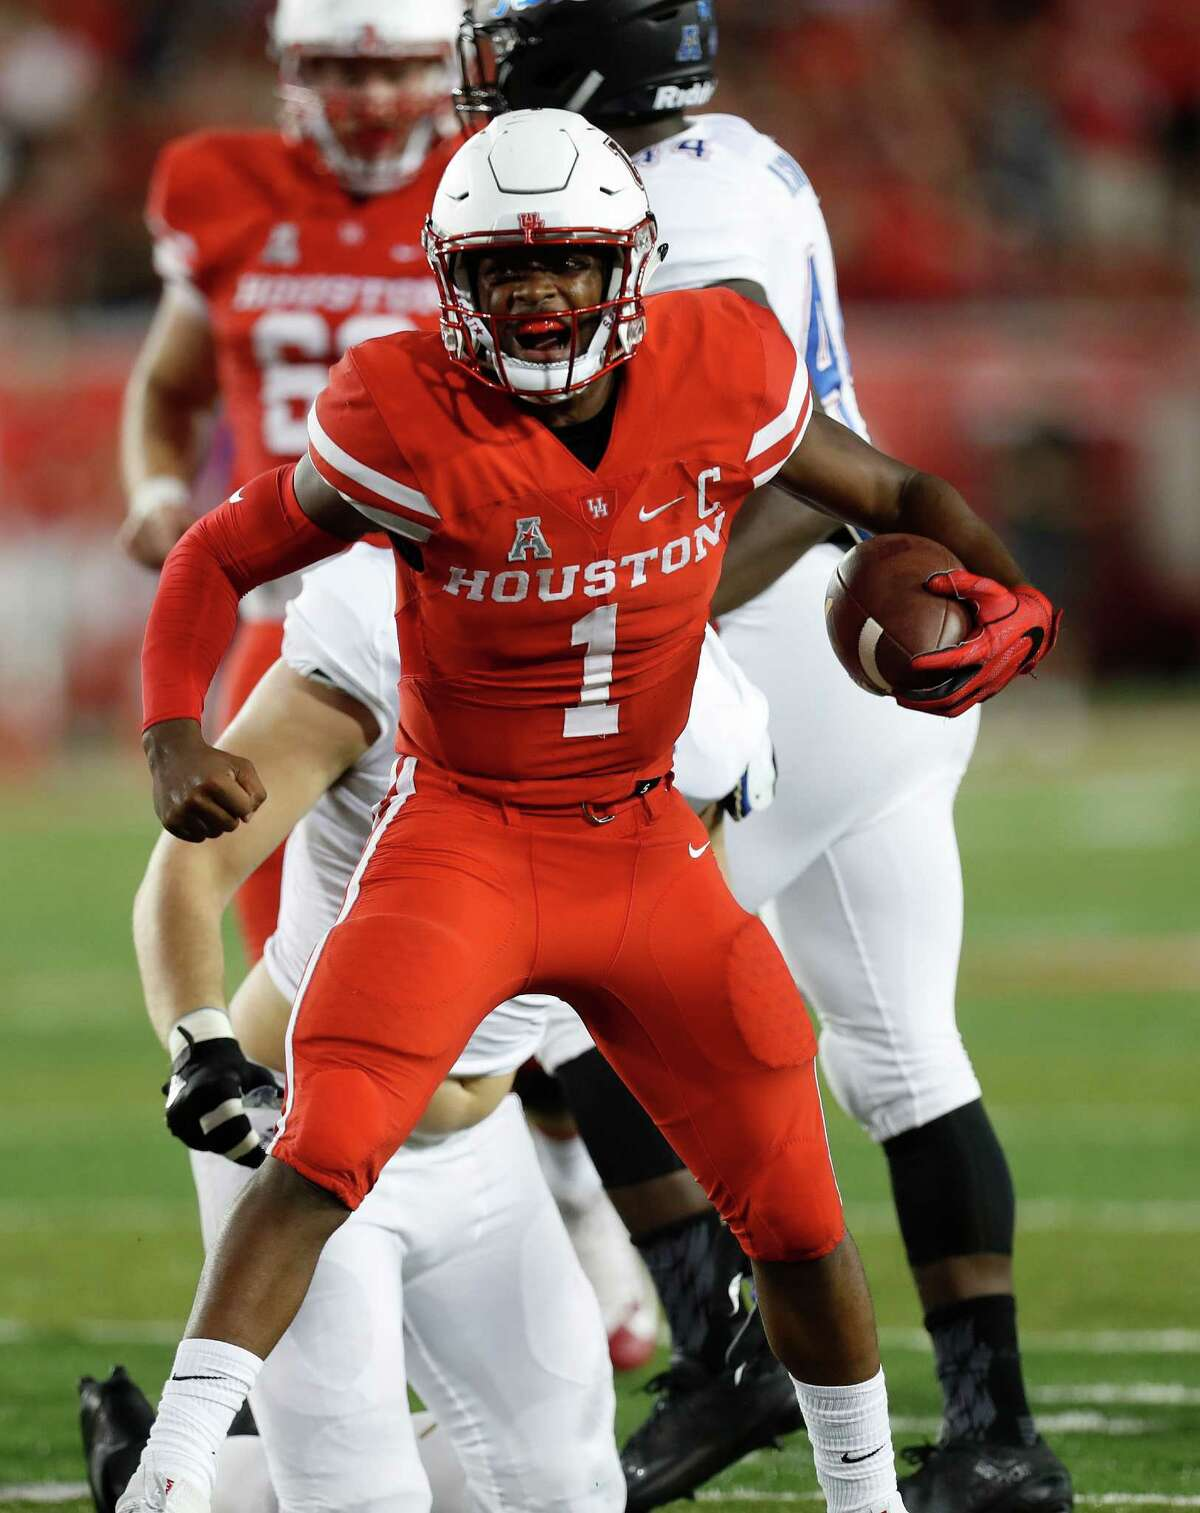 Houston Cougars quarterback Greg Ward Jr. (1) reacts after his long run gave the Cougars a first down during the second quarter of an NCAA college football game at TDECU Stadium, Saturday,Oct. 15, 2016 in Pearland.